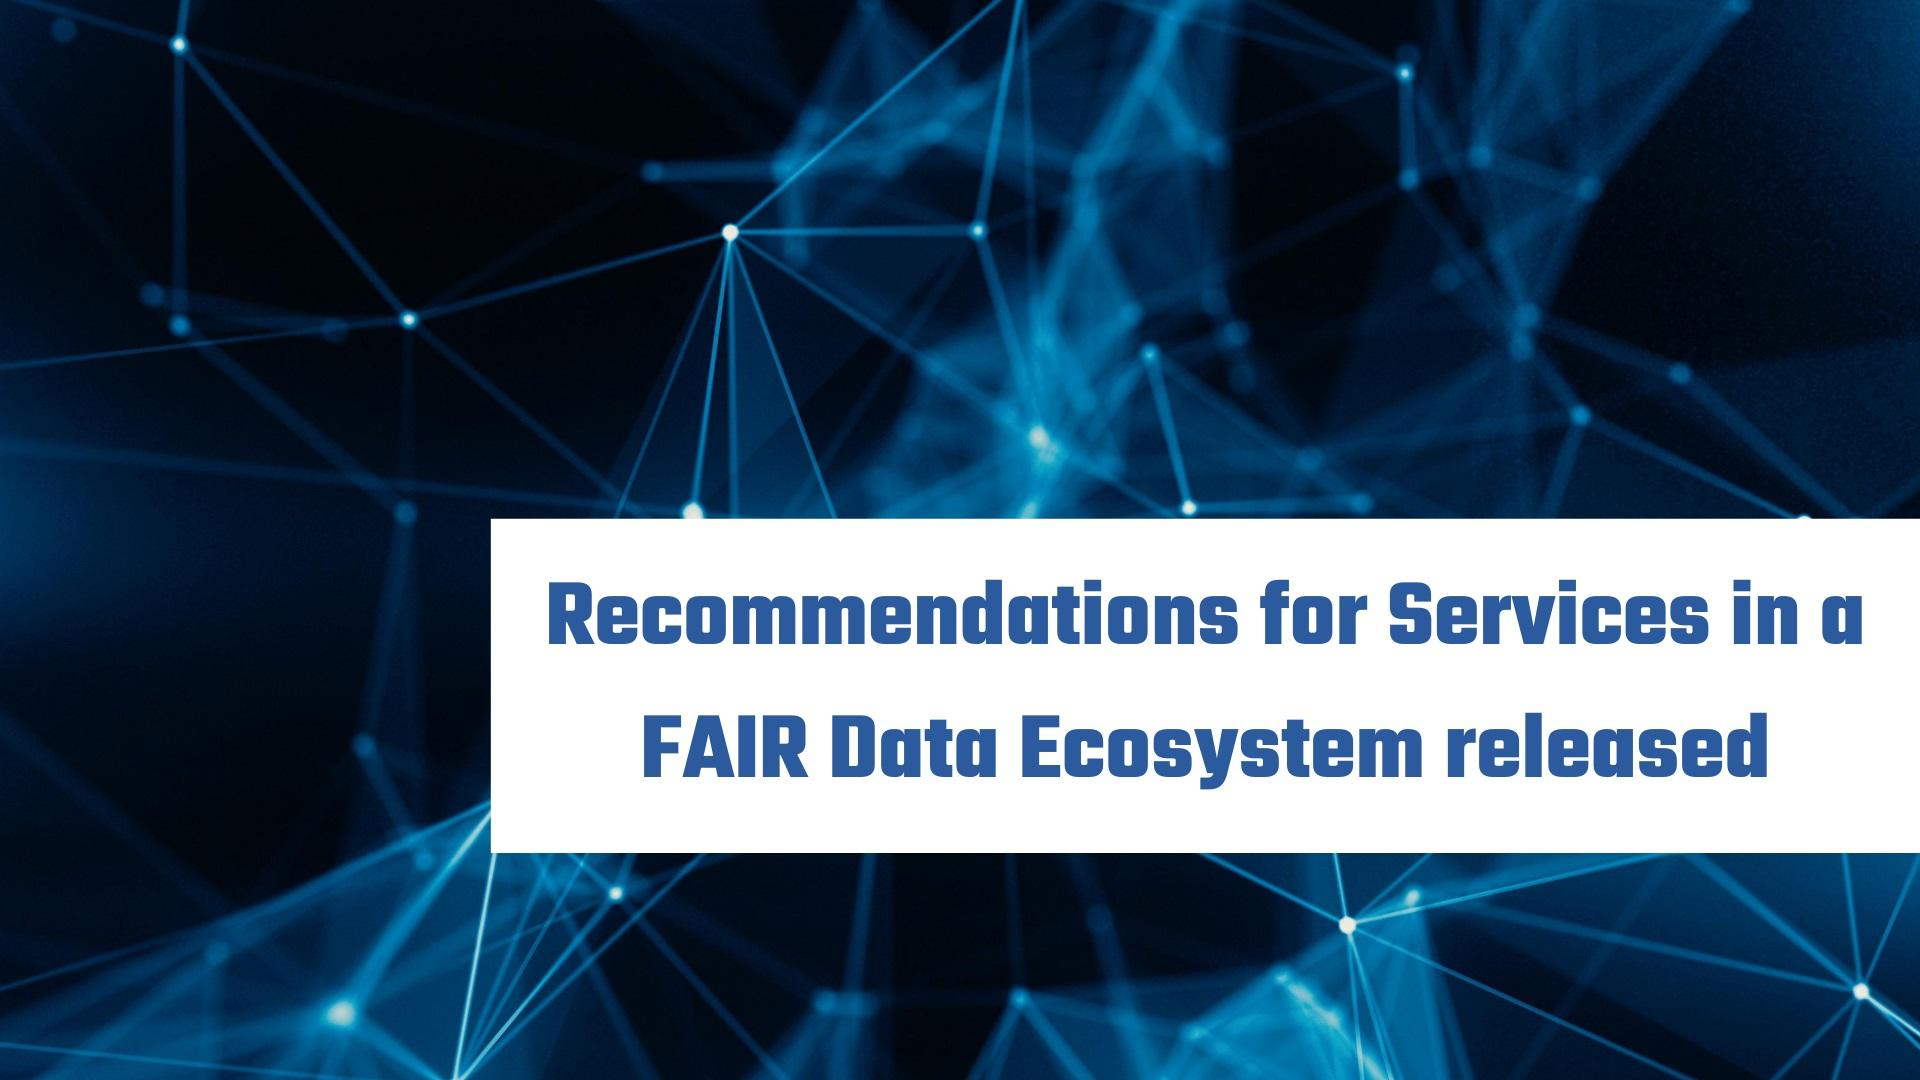 Recommendations for Services in a FAIR Data Ecosystem released